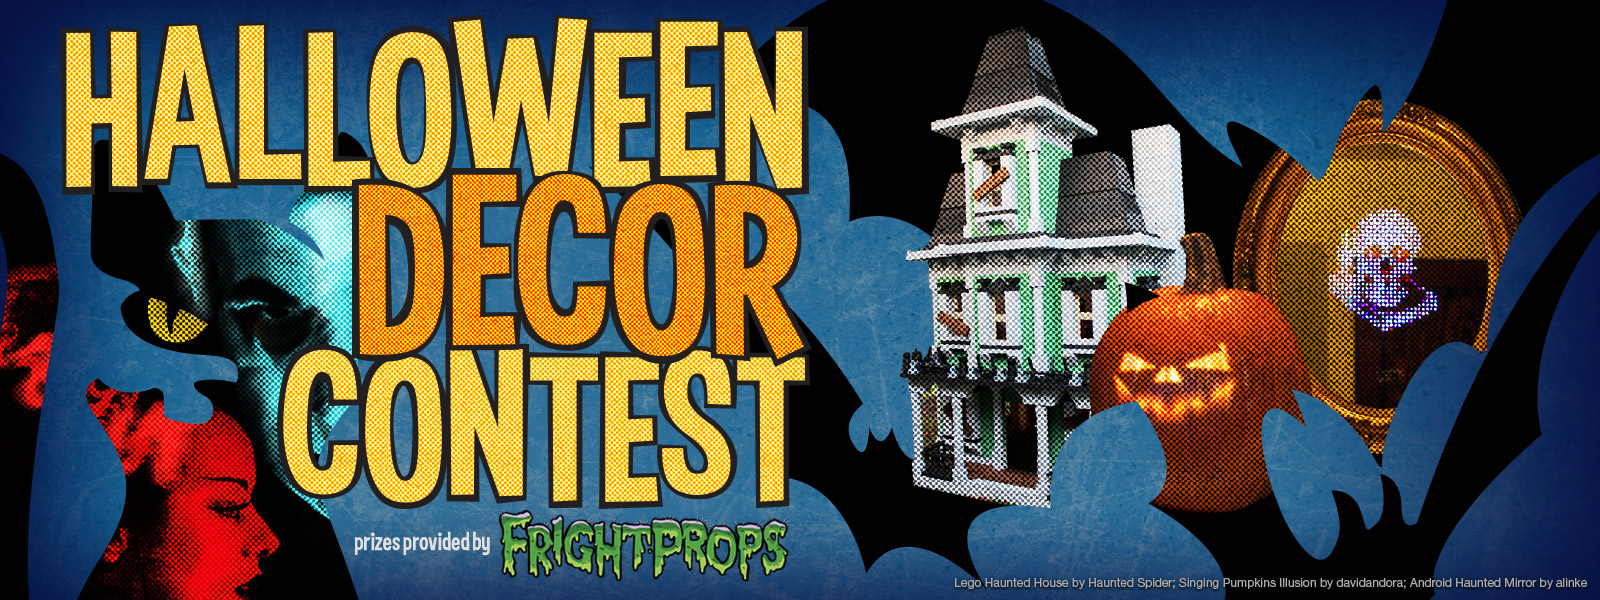 halloween decor contest 2015 - Halloween Decorating Contest